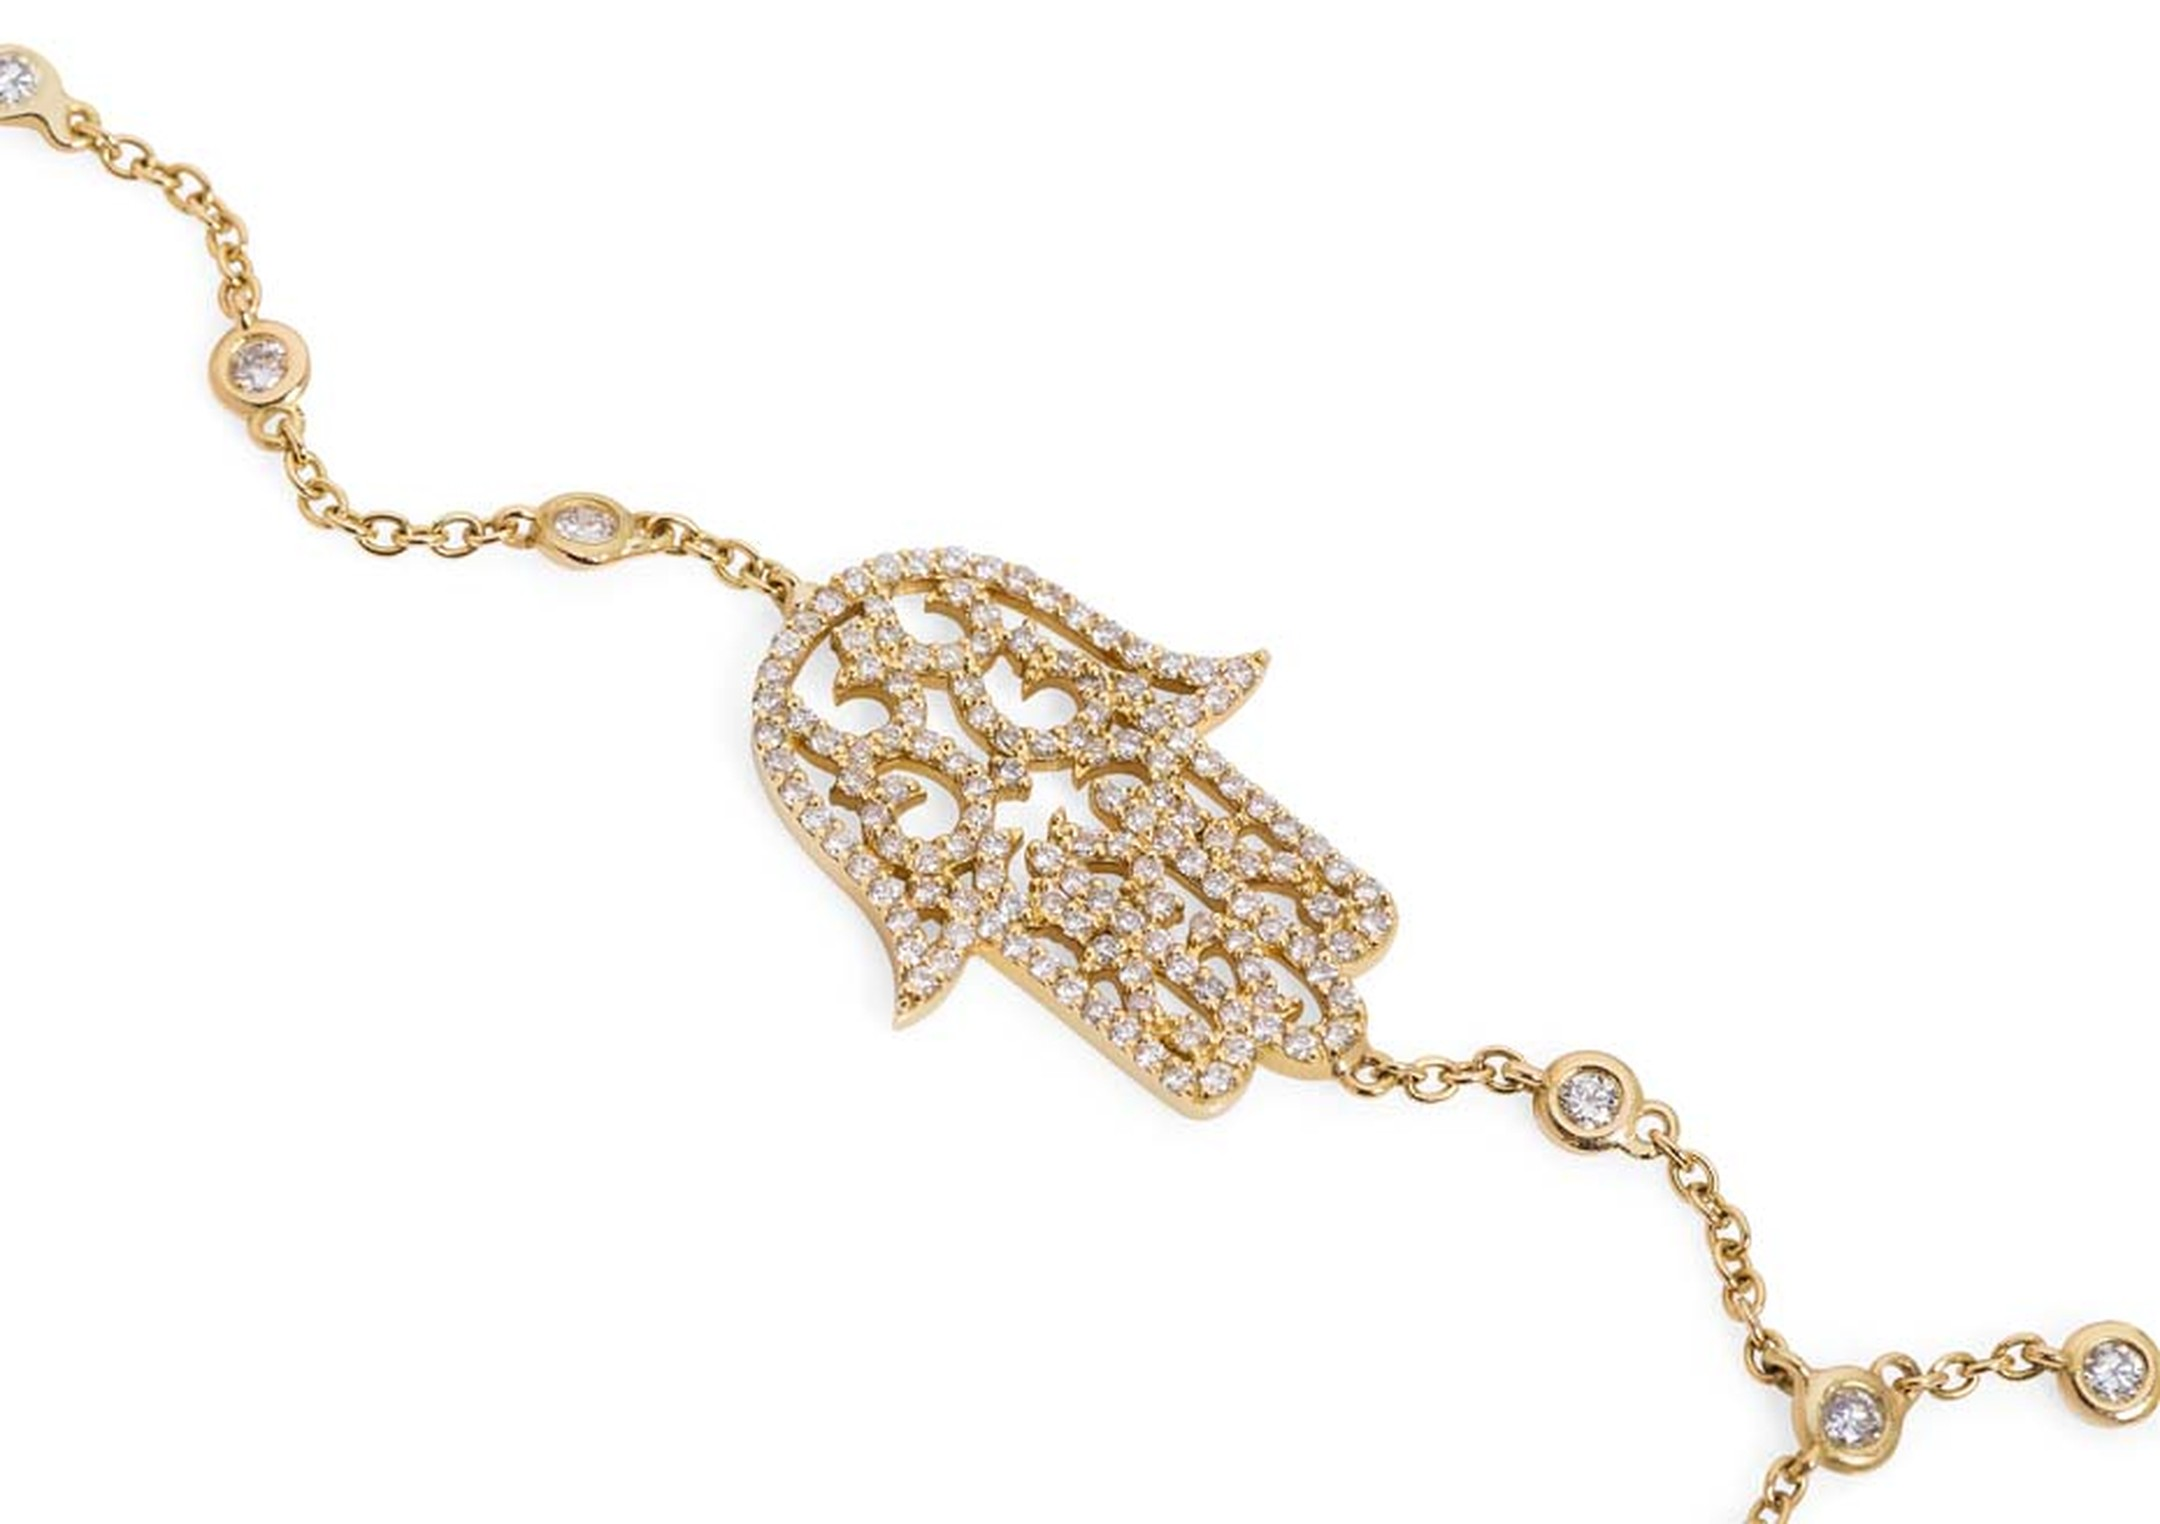 Noudar Jewels' Hamsa finger bracelet draws on elements from both Arabic and Islamic cultures.